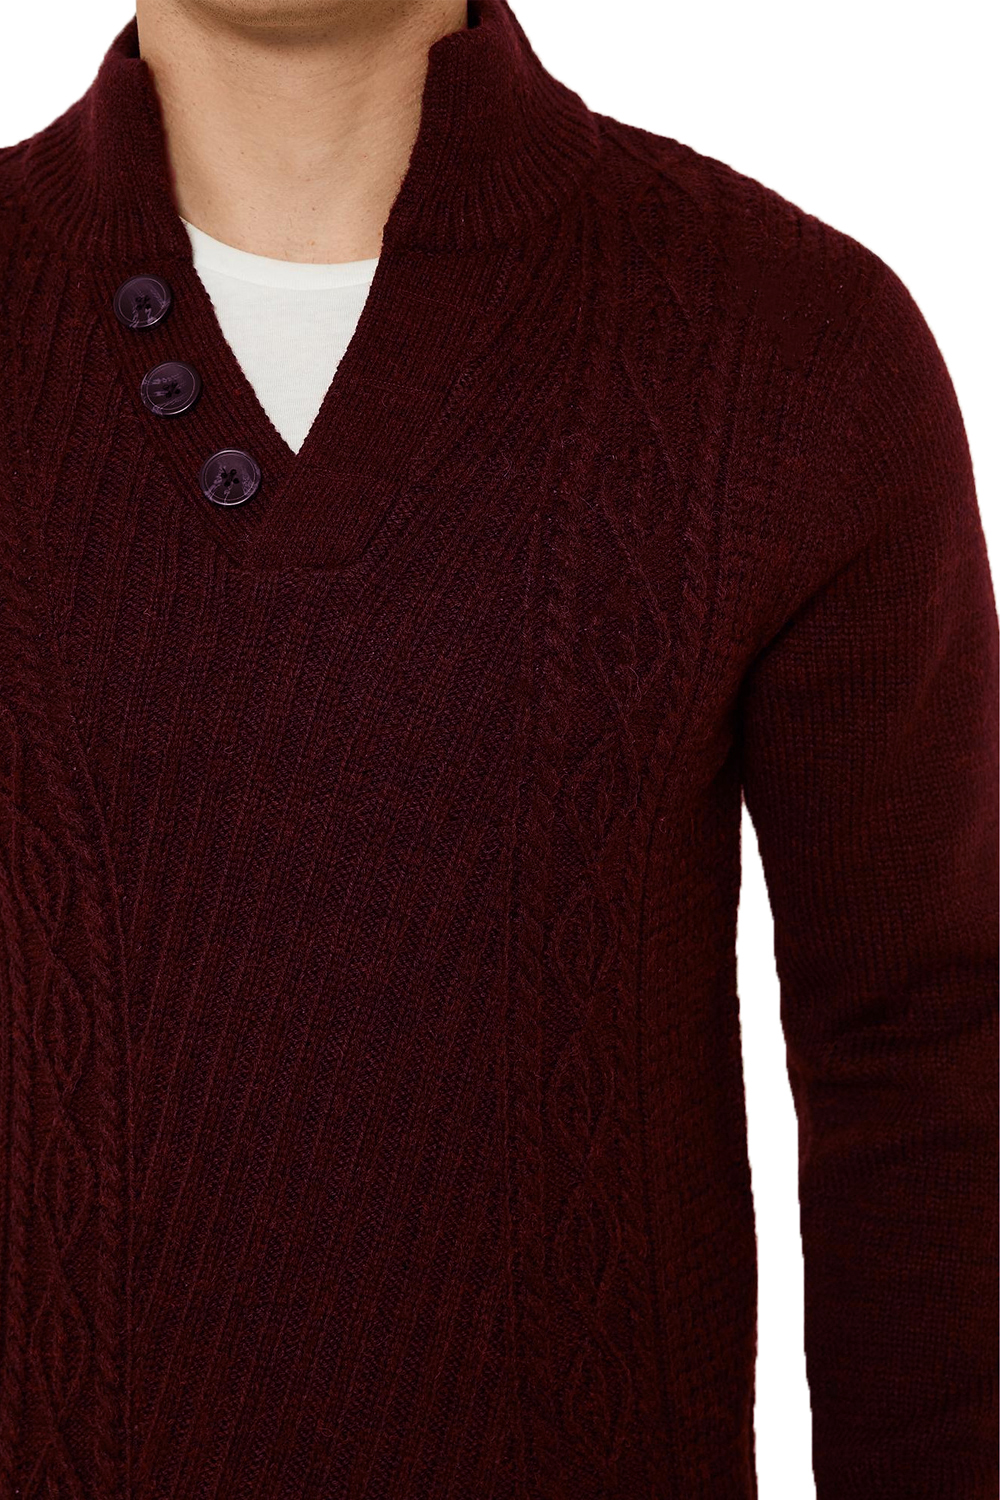 Threadbare-Wray-Mens-Top-Cable-Knited-Designer-Luxurious-Wool-Mix-Raglan-Jumpers thumbnail 6